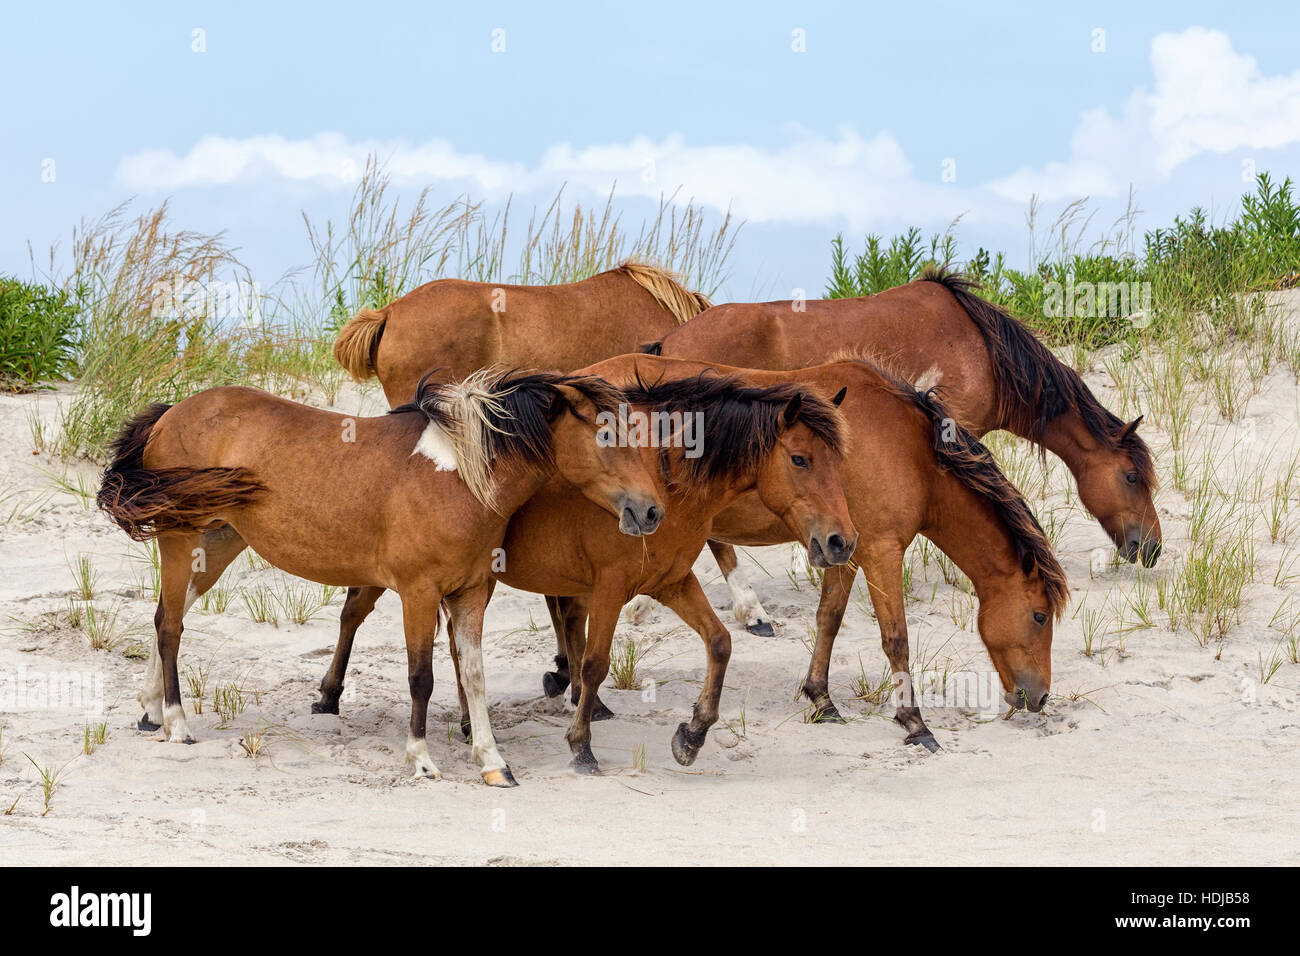 A group of wild ponies, horses, of Assateague Island on the beach in Maryland, USA. - Stock Image